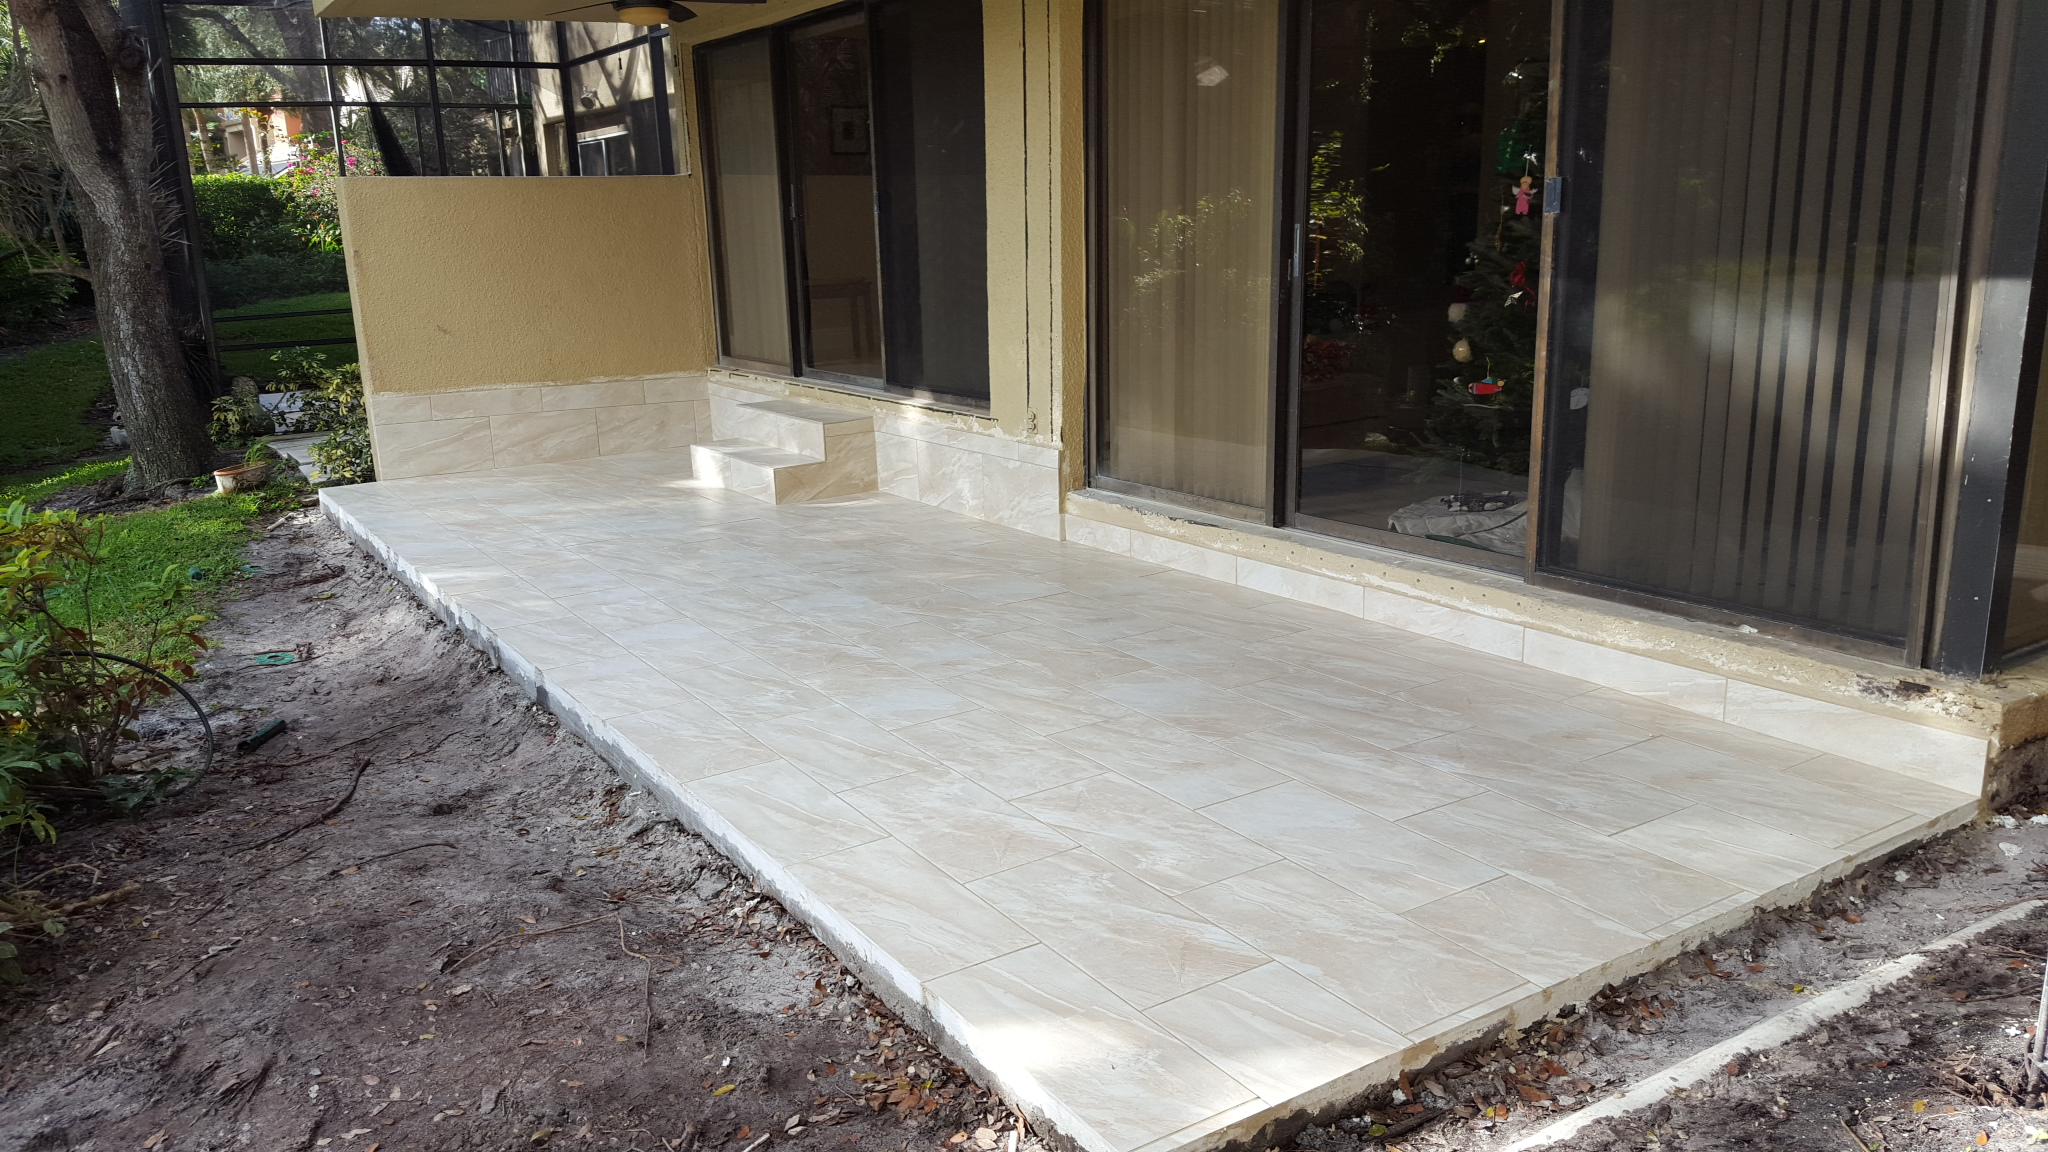 Concrete patio and tiles for Louis B in Boca Raton